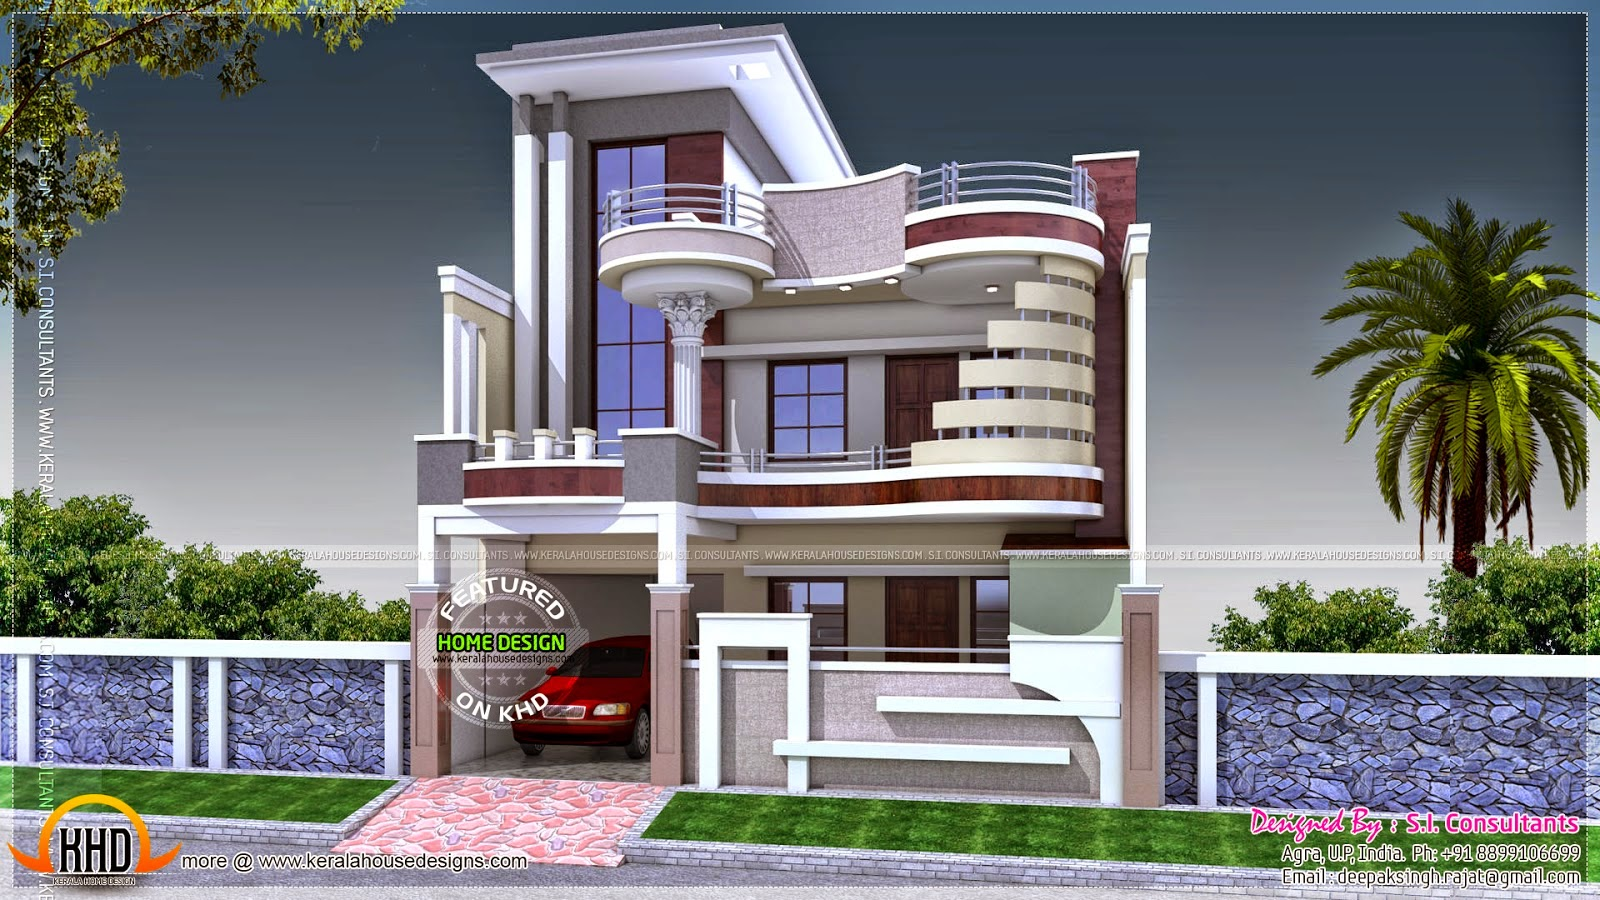 Tropicalizer indian house design - Design house ...